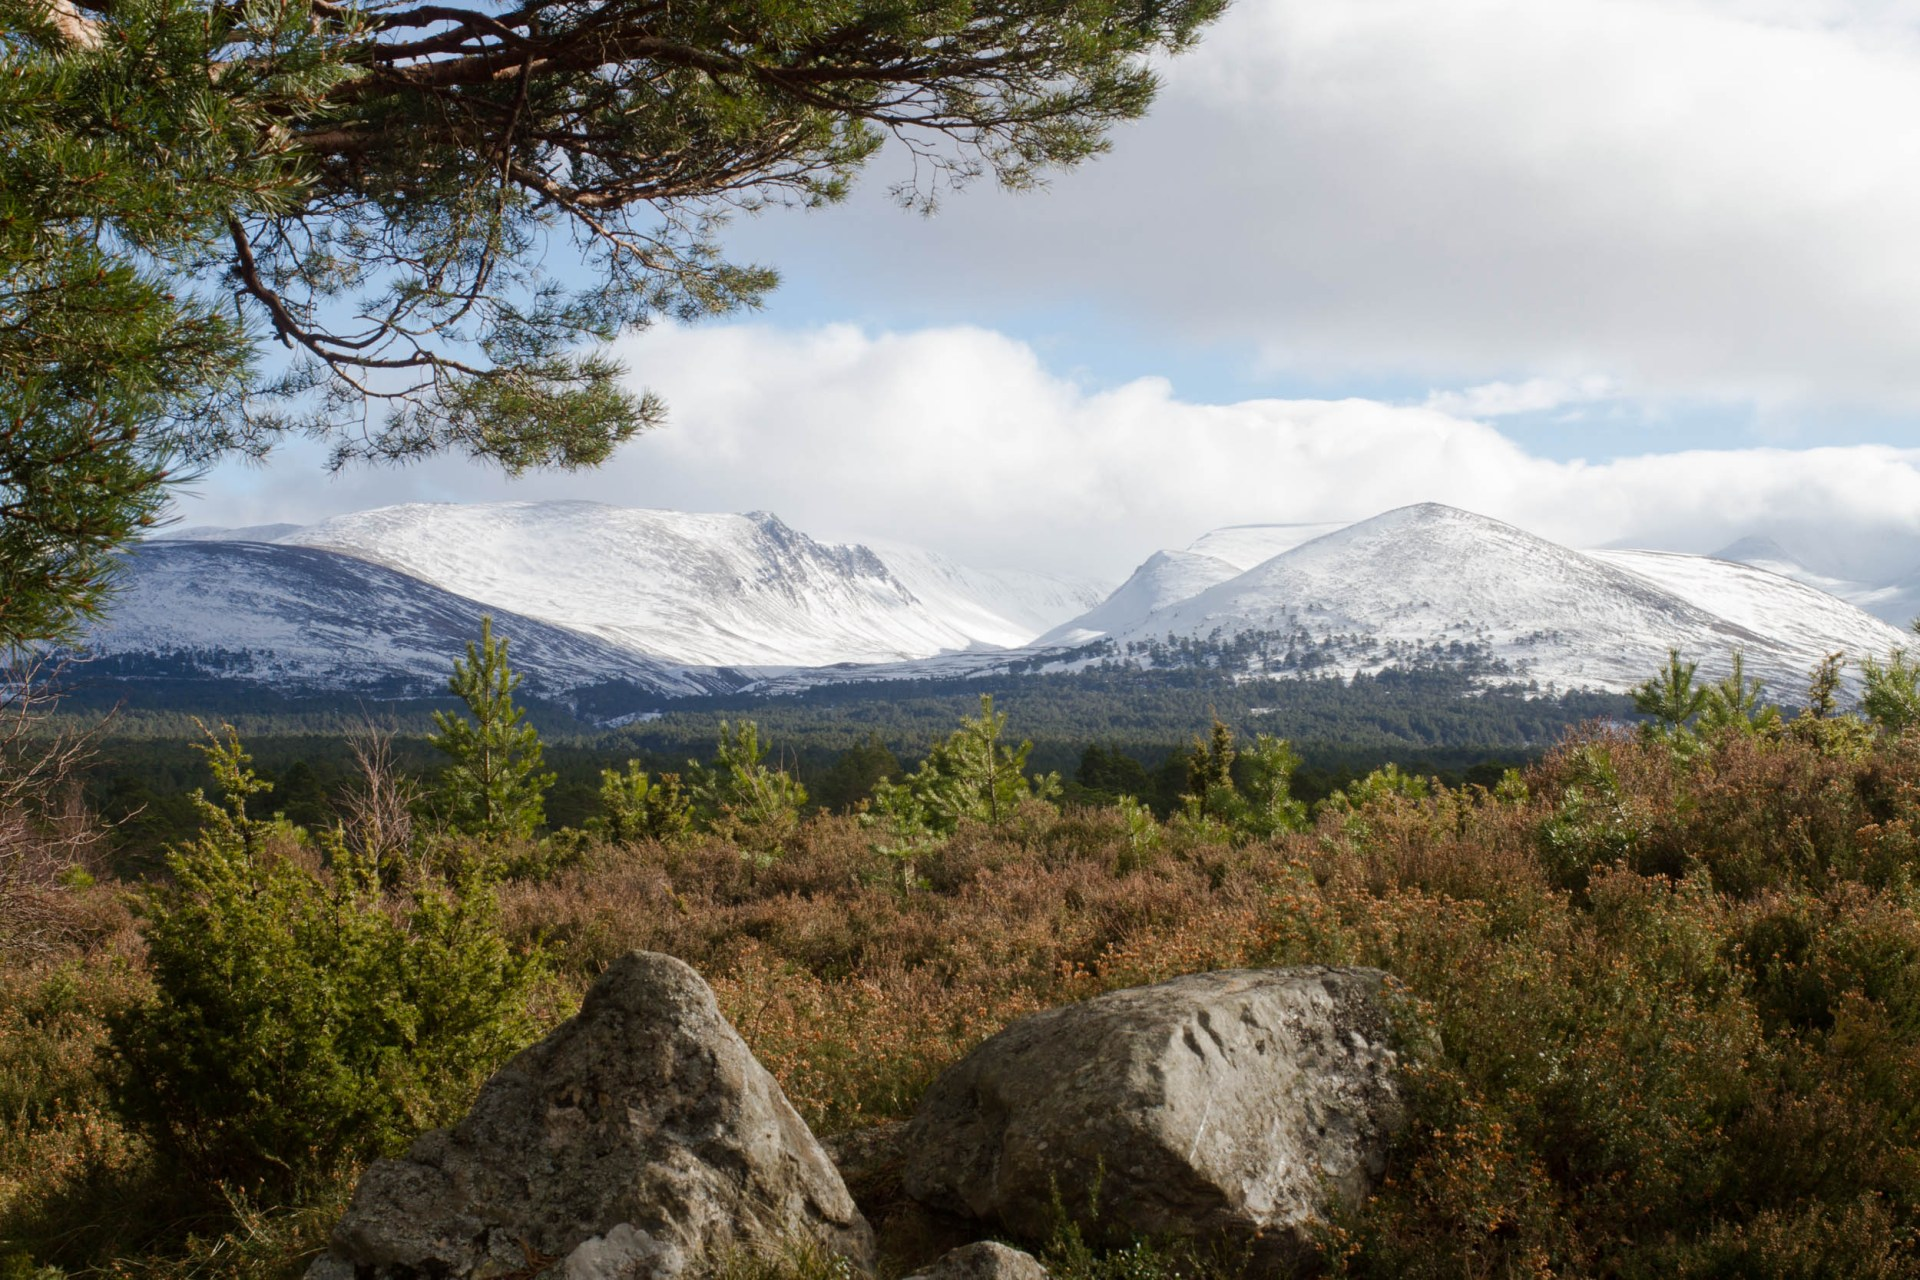 Photo of snow capped mountains in the background. A Scots pine tree over hanging the top left of the photo with heather and young trees